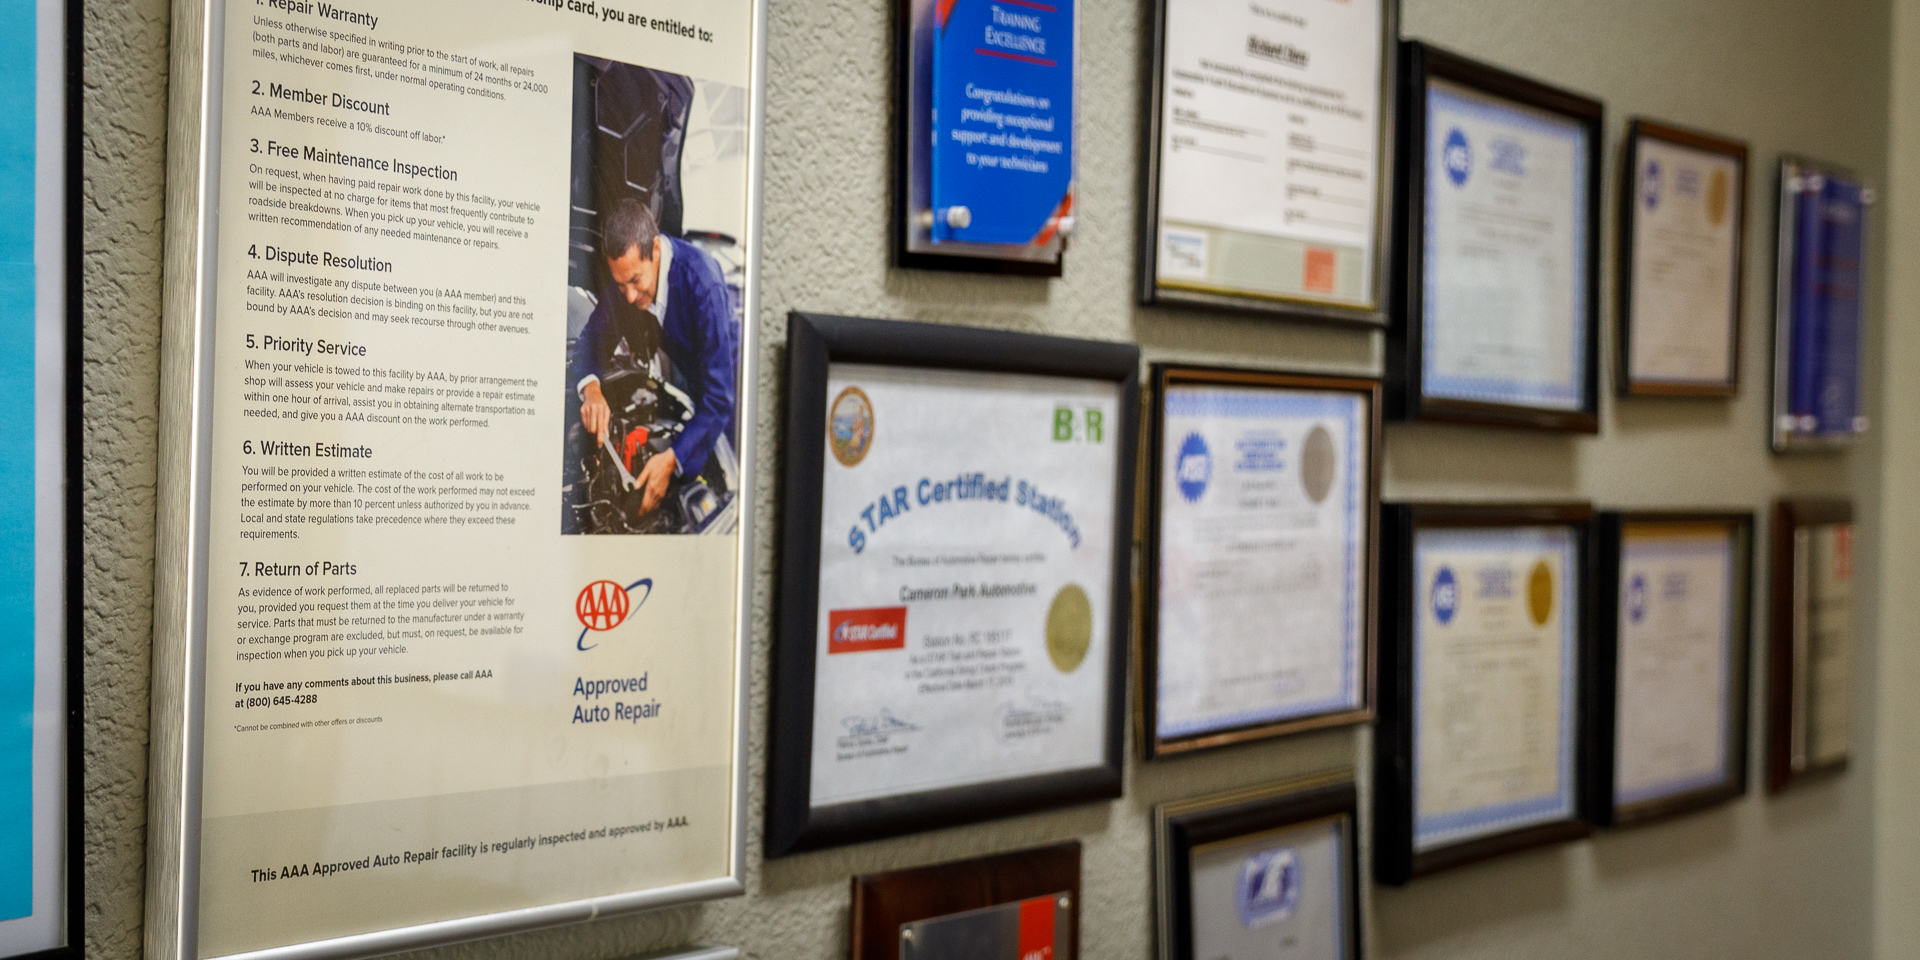 Continuing Education and Certificates Wall